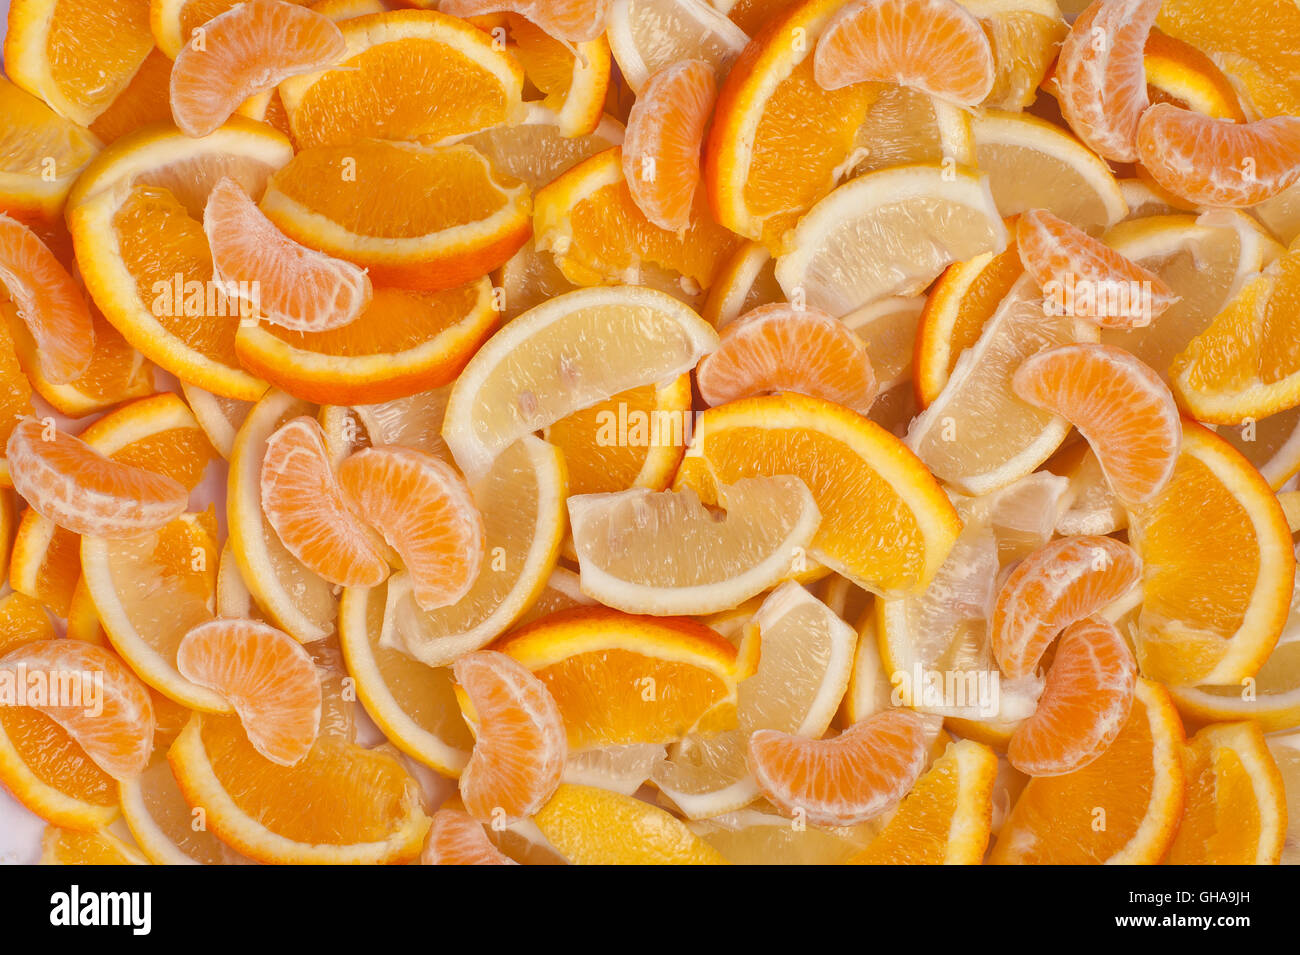 Les antécédents - Fruits Orange Citron et Mandarin Photo Stock